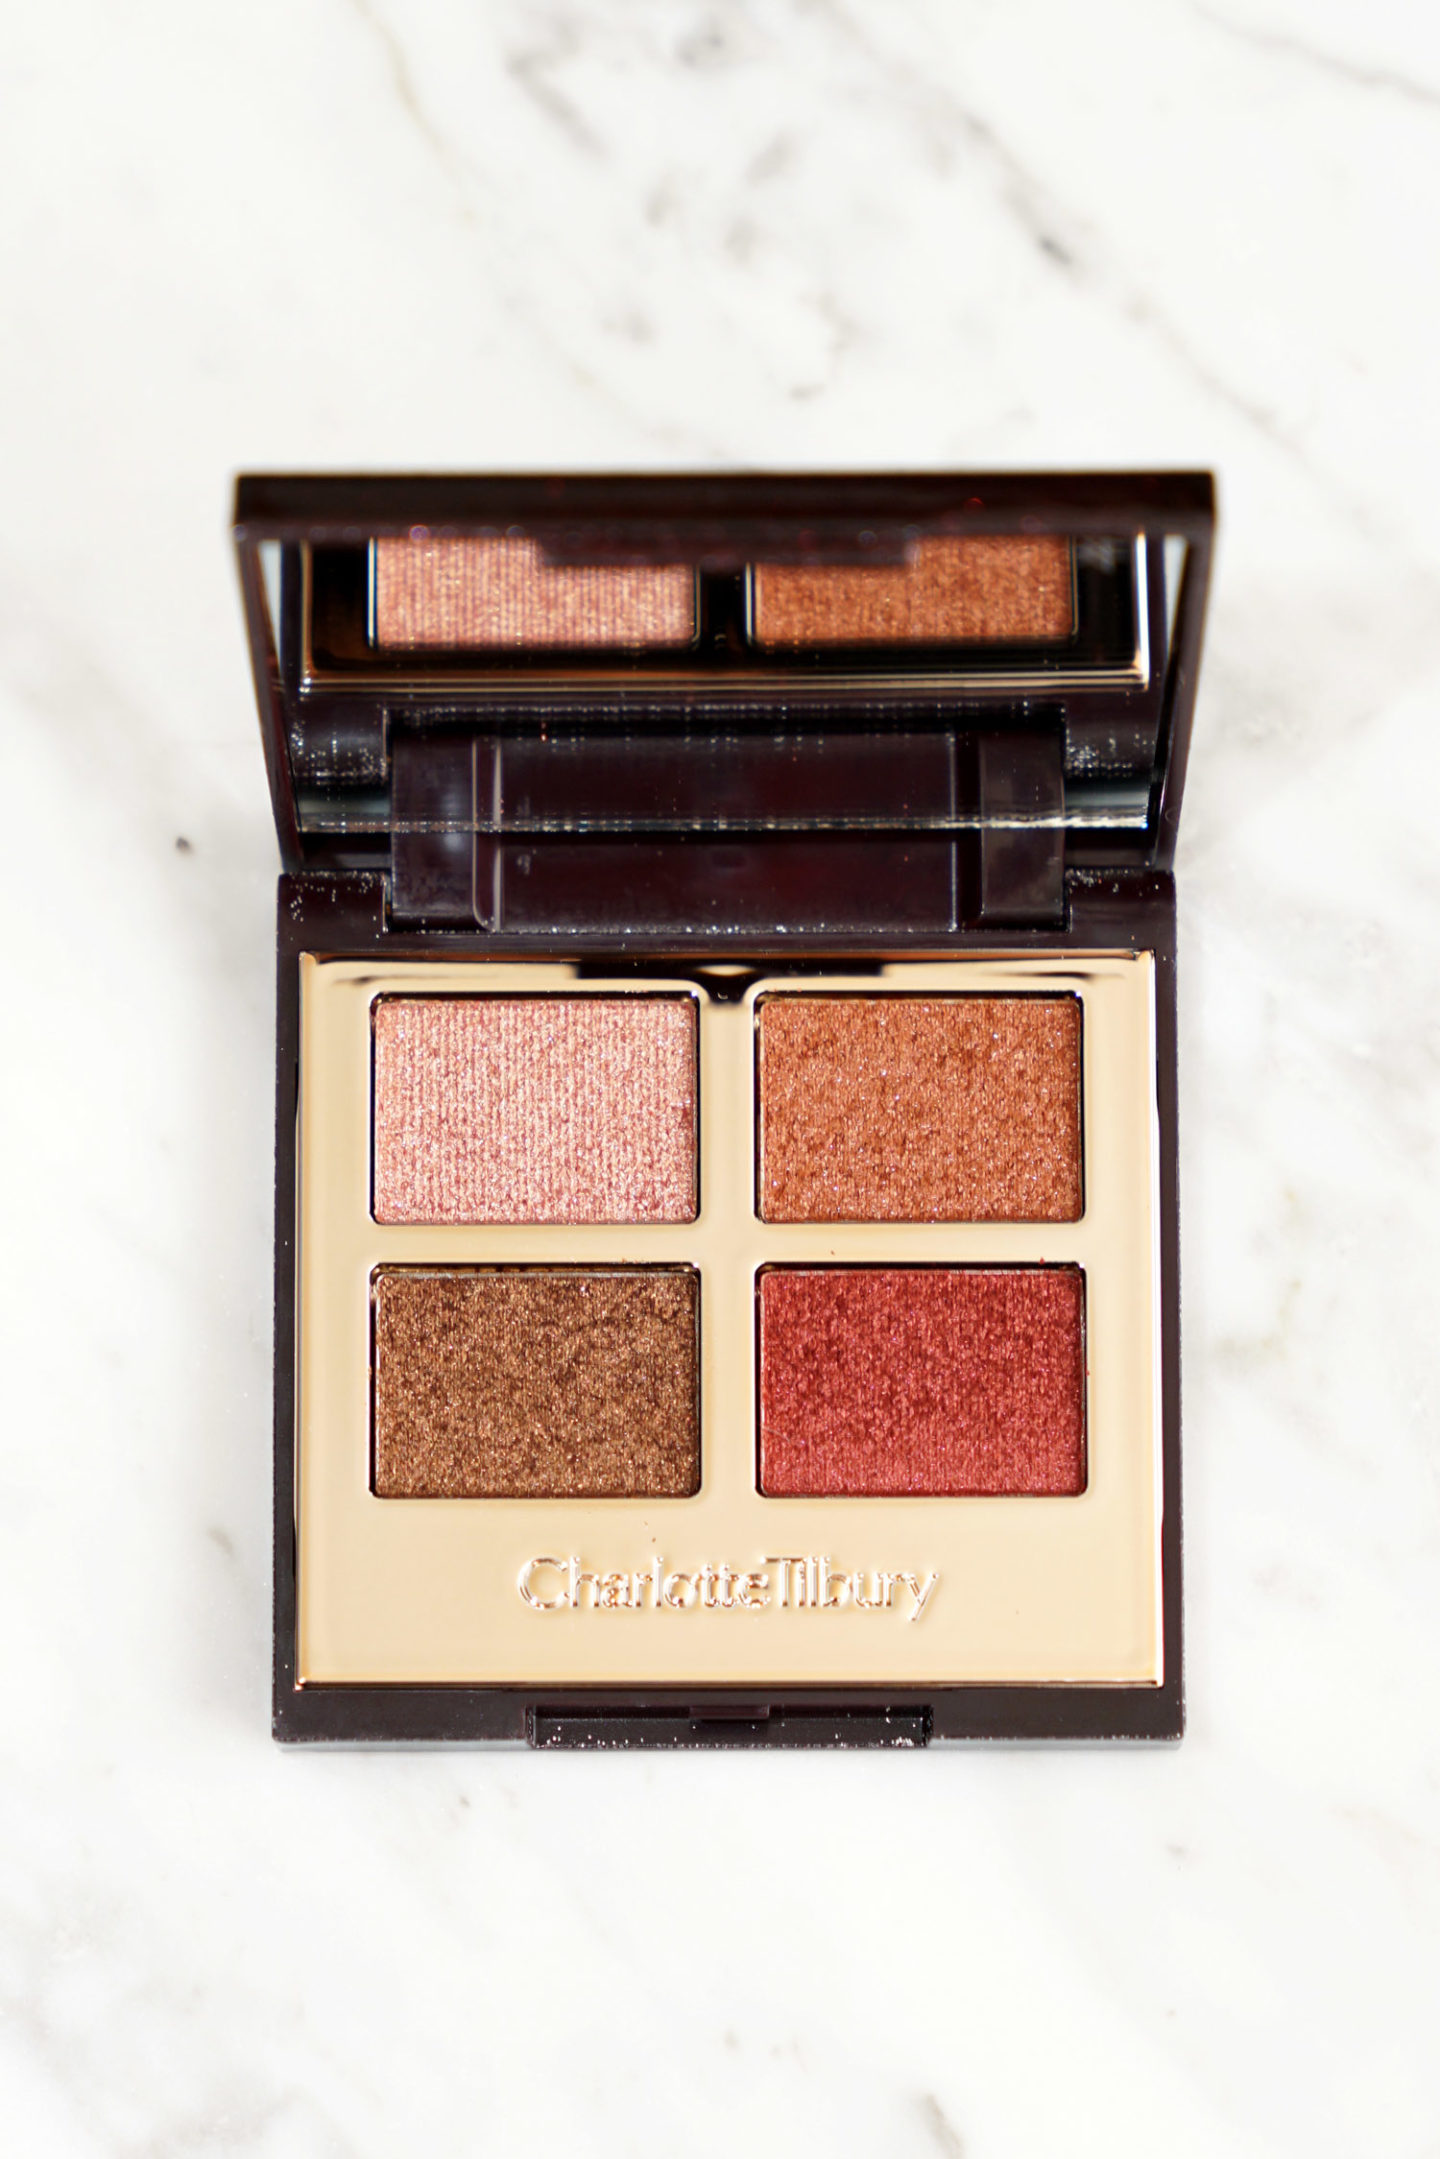 Charlotte Tilbury Luxury Palette of Pops Supersonic Girl Review